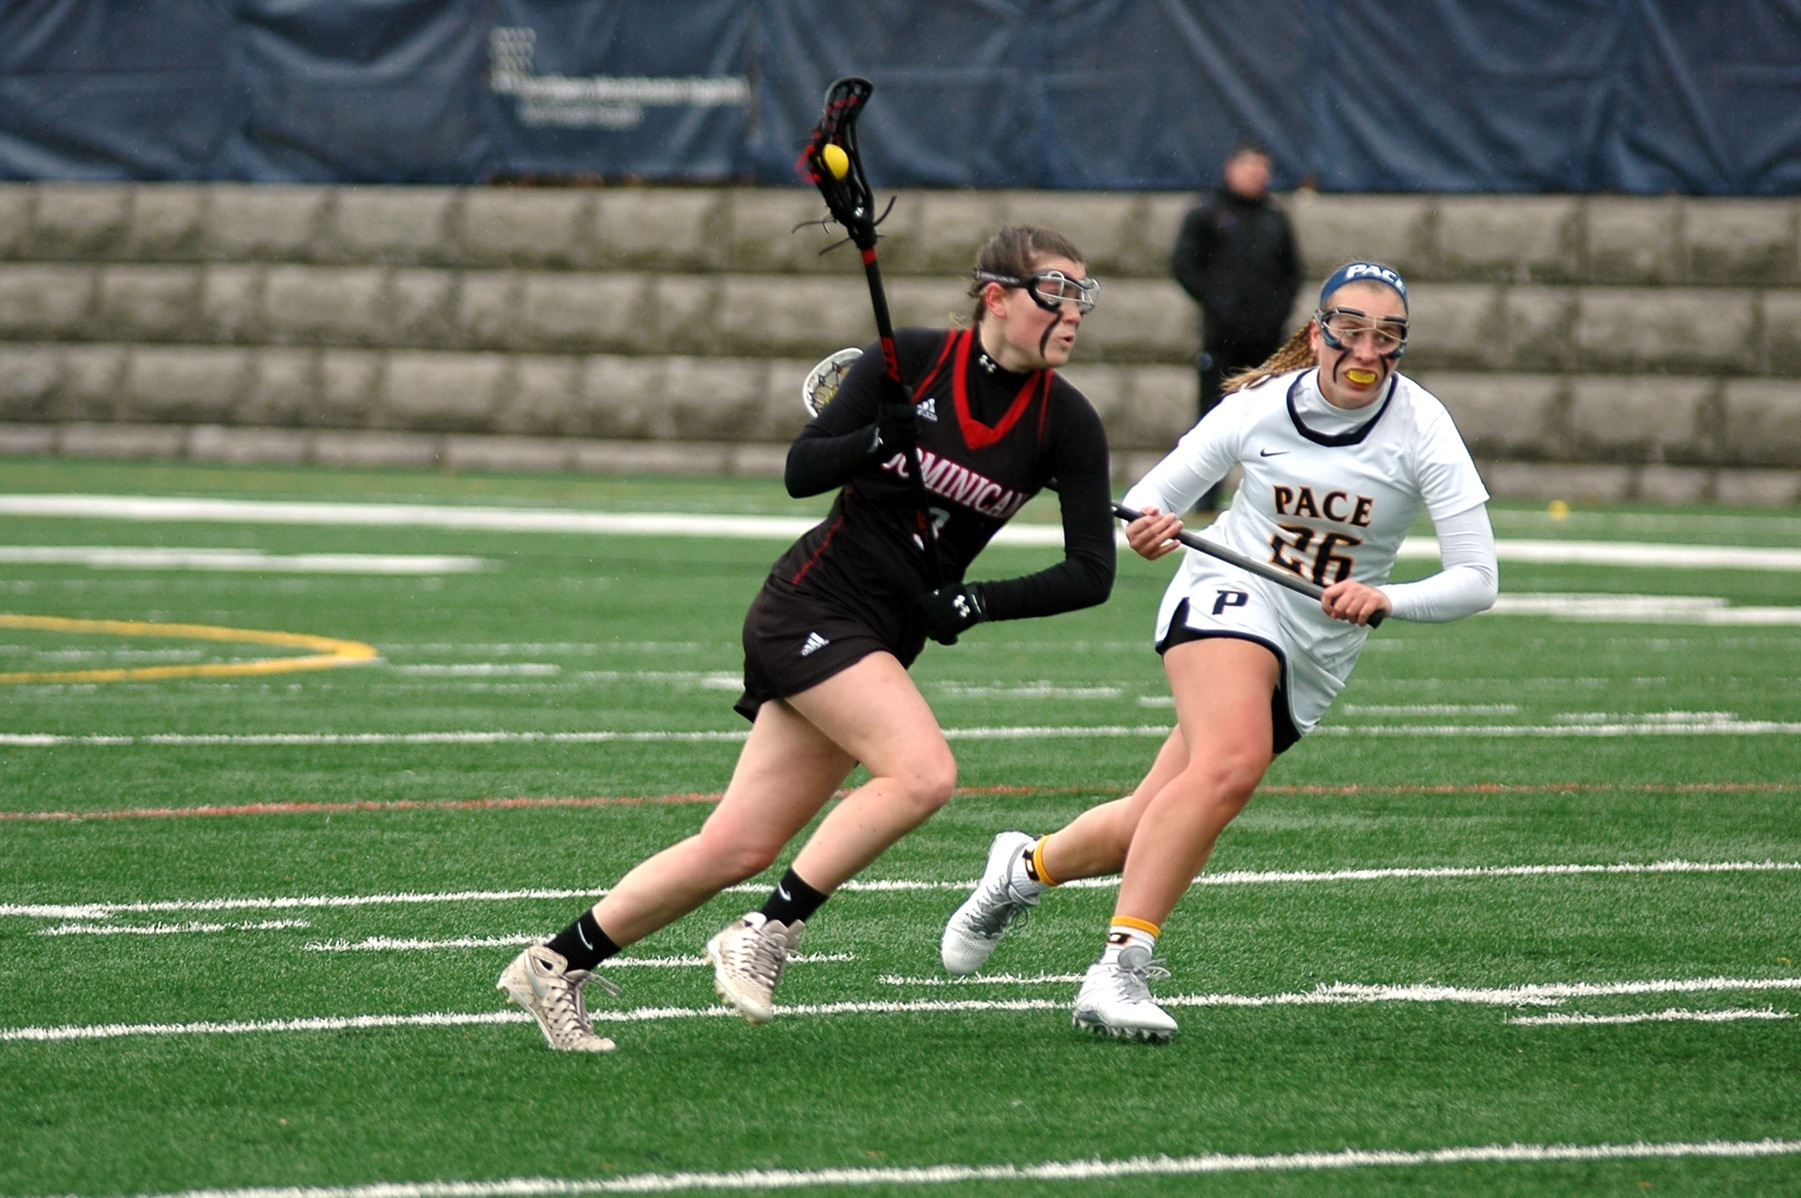 FOX RECORDS CAREER HIGH SIX GOALS IN VICTORY OVER PURPLE KNIGHTS